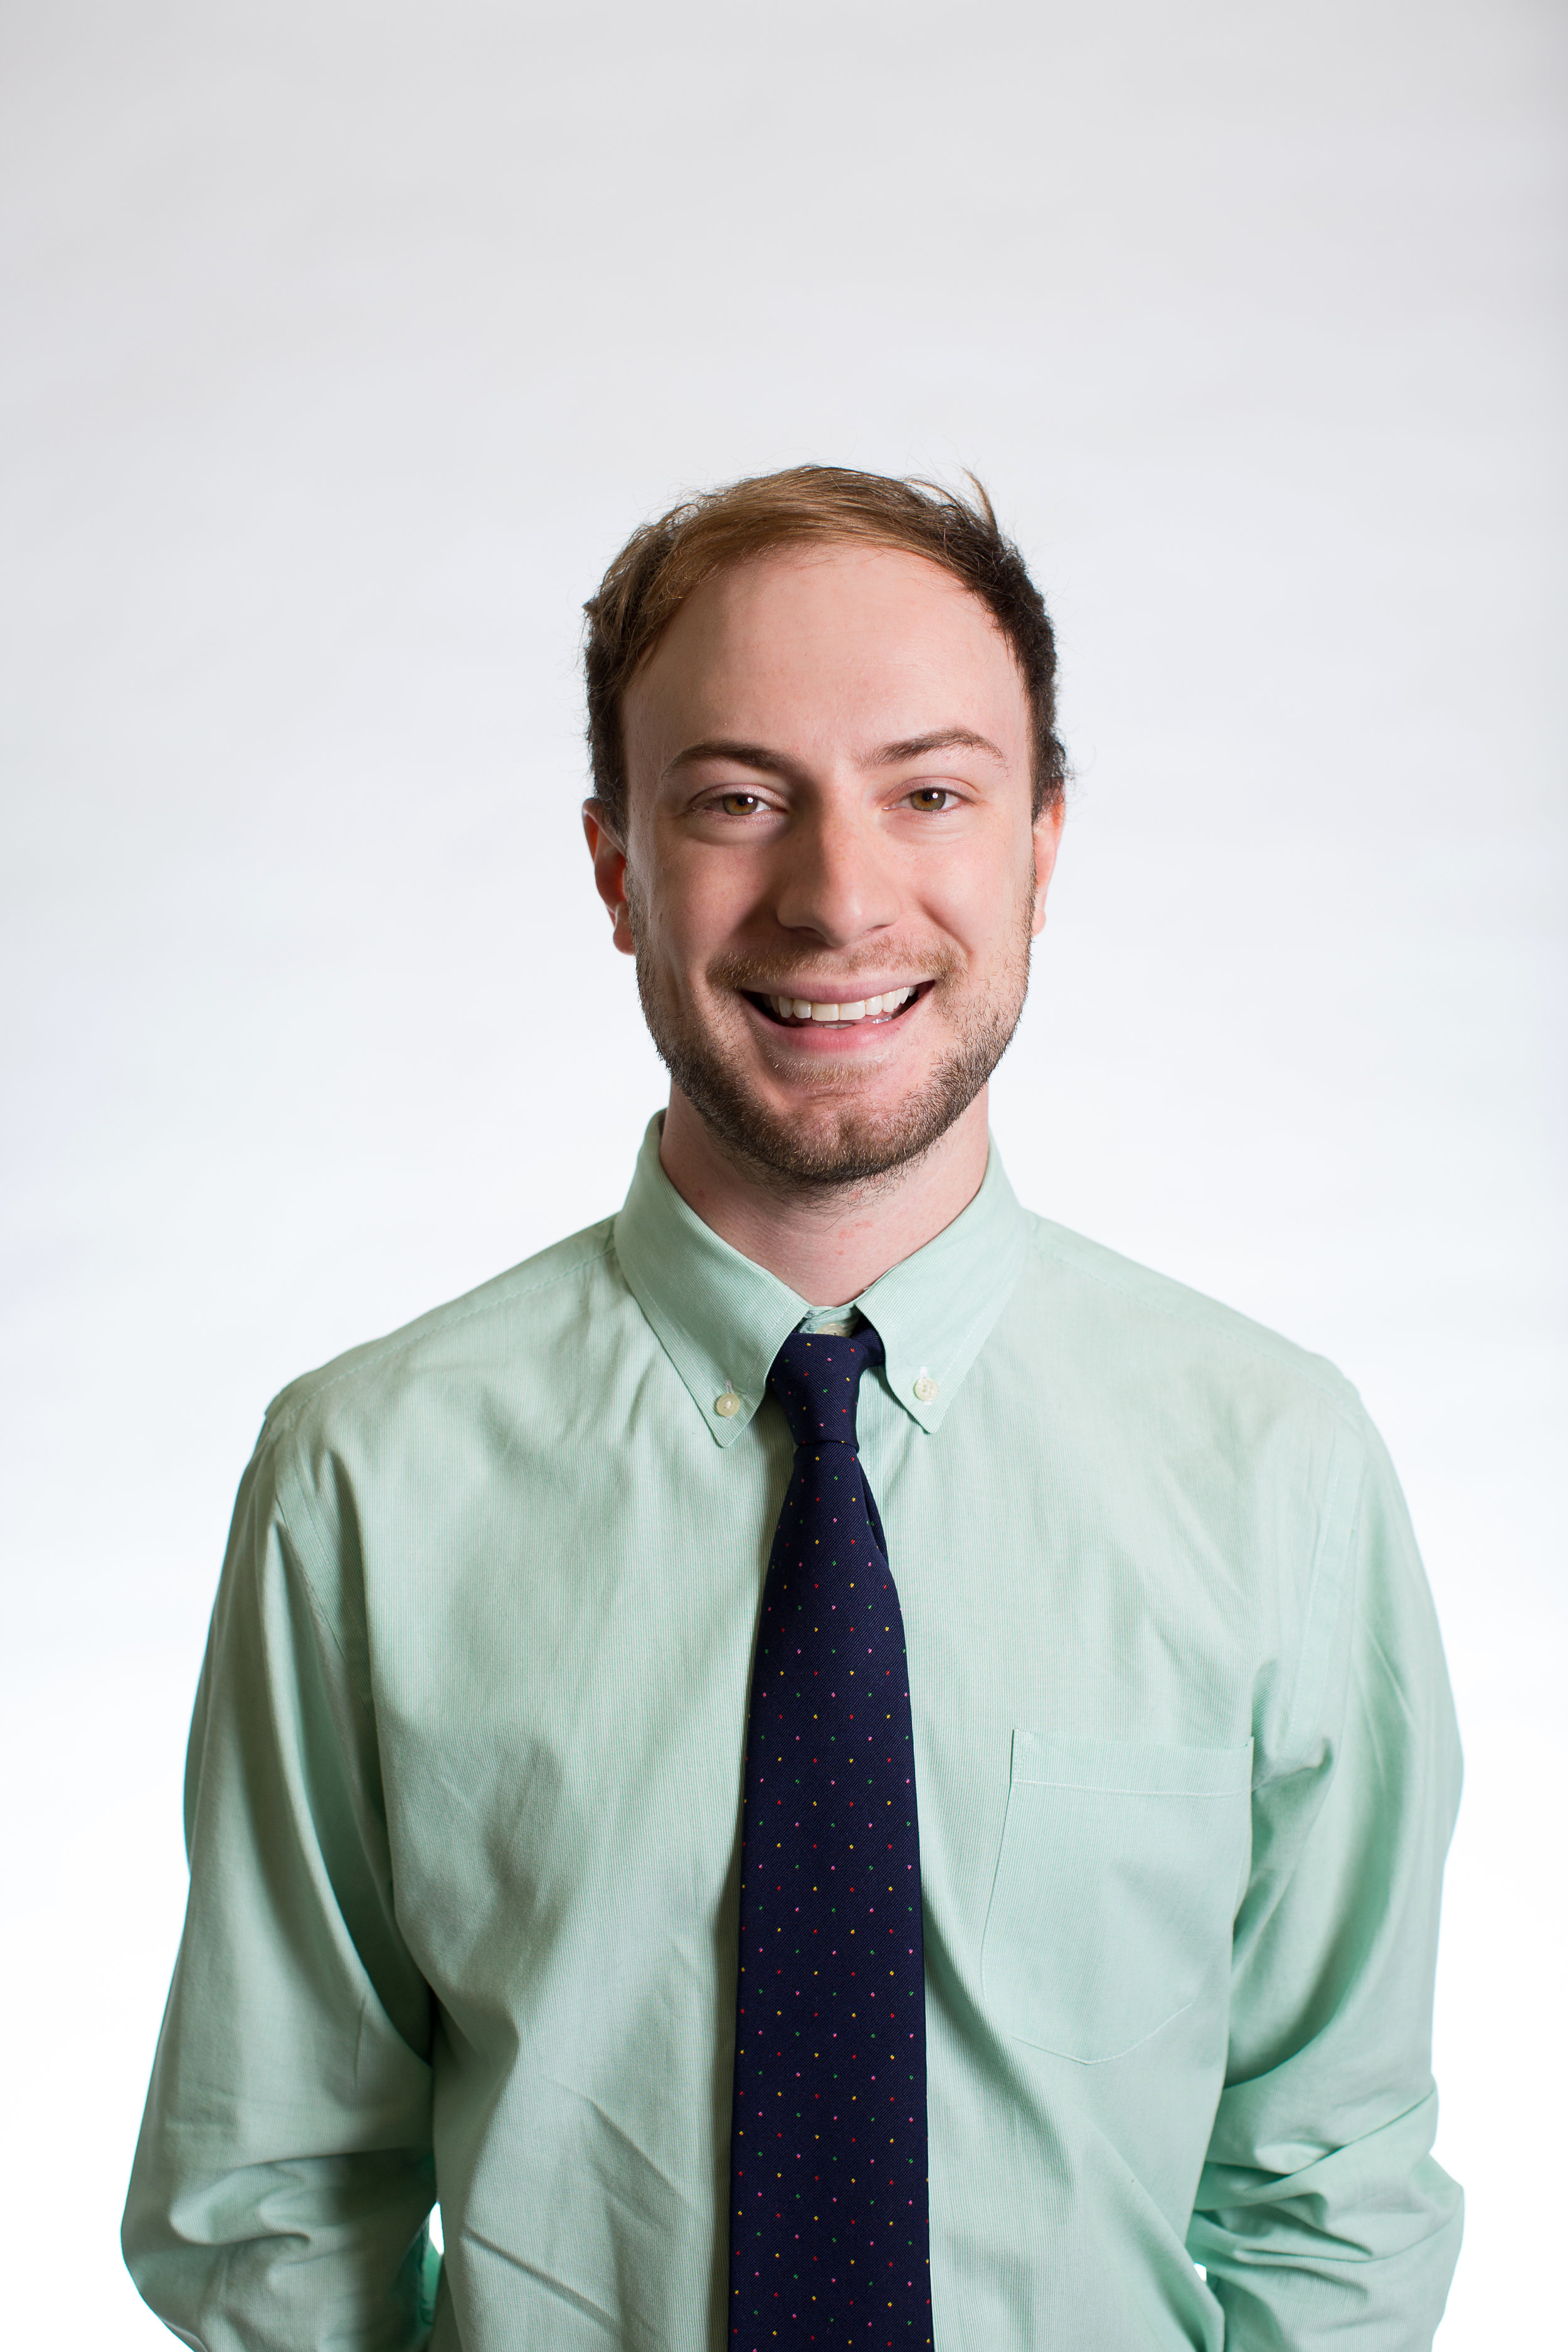 """Dillon Lynch, Recruiter - """"I love working for RMI because I get to work, everyday, with people who are passionate about the success of our programs and its impact on students. Our programs make an impact on both the students as well as those that serve. What's not to love?"""""""